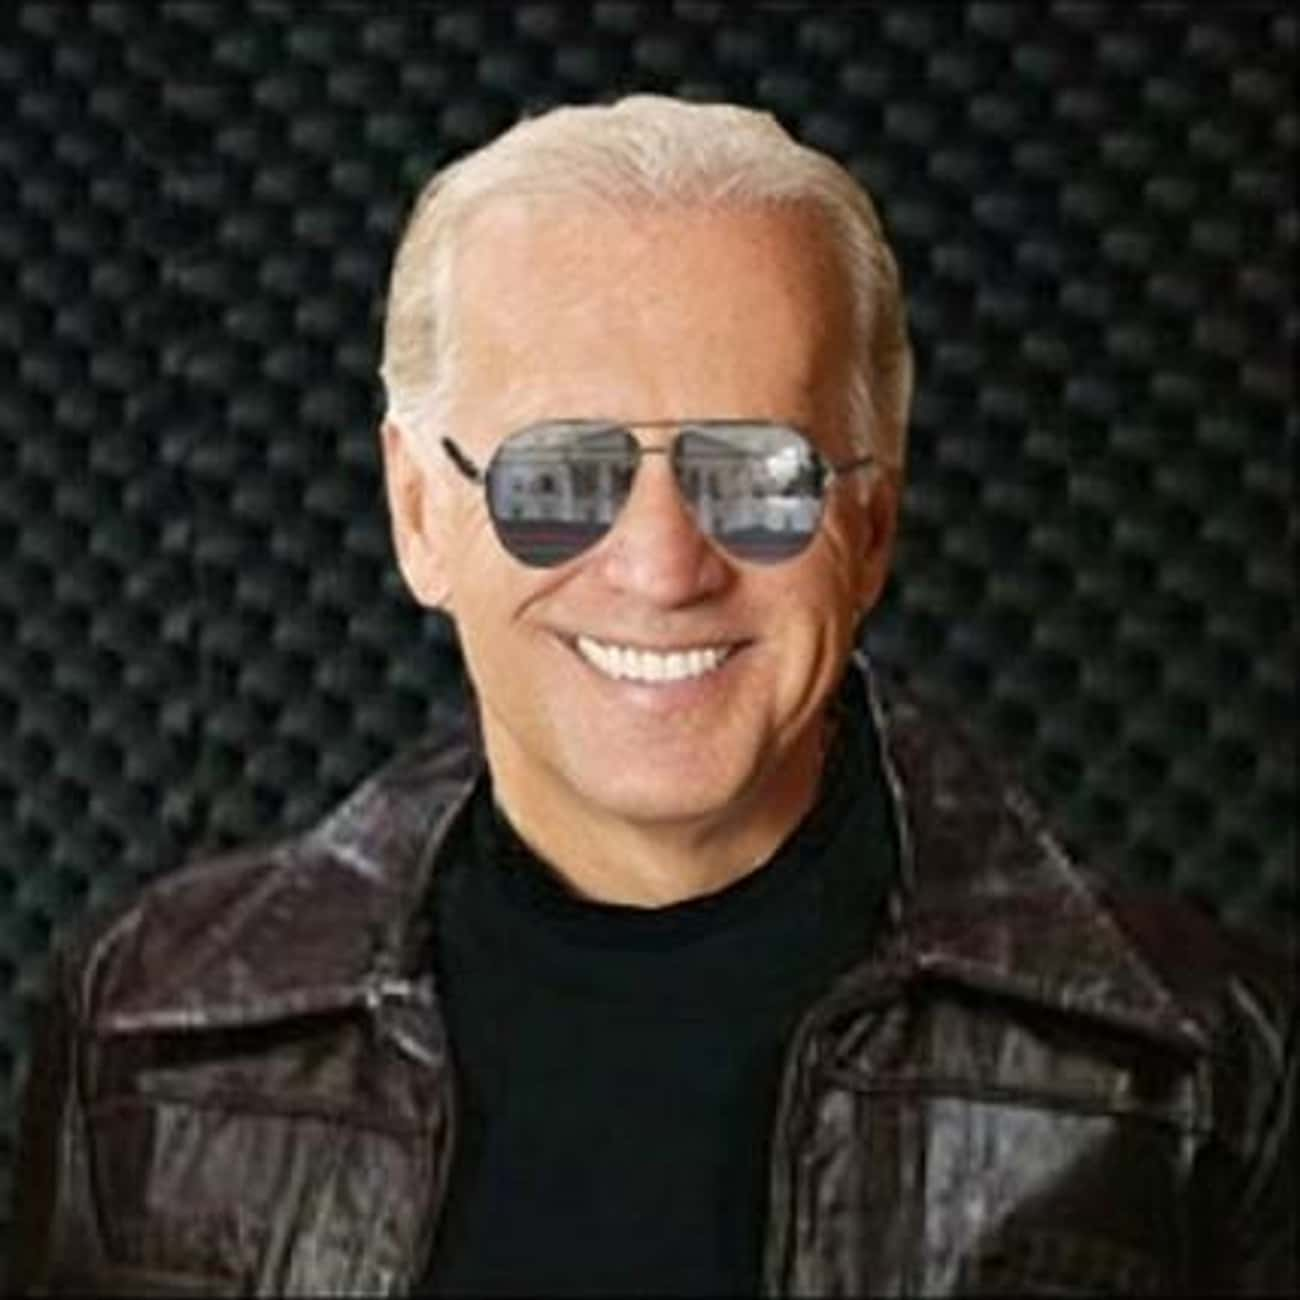 You cannot go to a 7-11 or a d is listed (or ranked) 4 on the list Joe Bidenisms: The Funniest and Best Joe Biden Gaffes